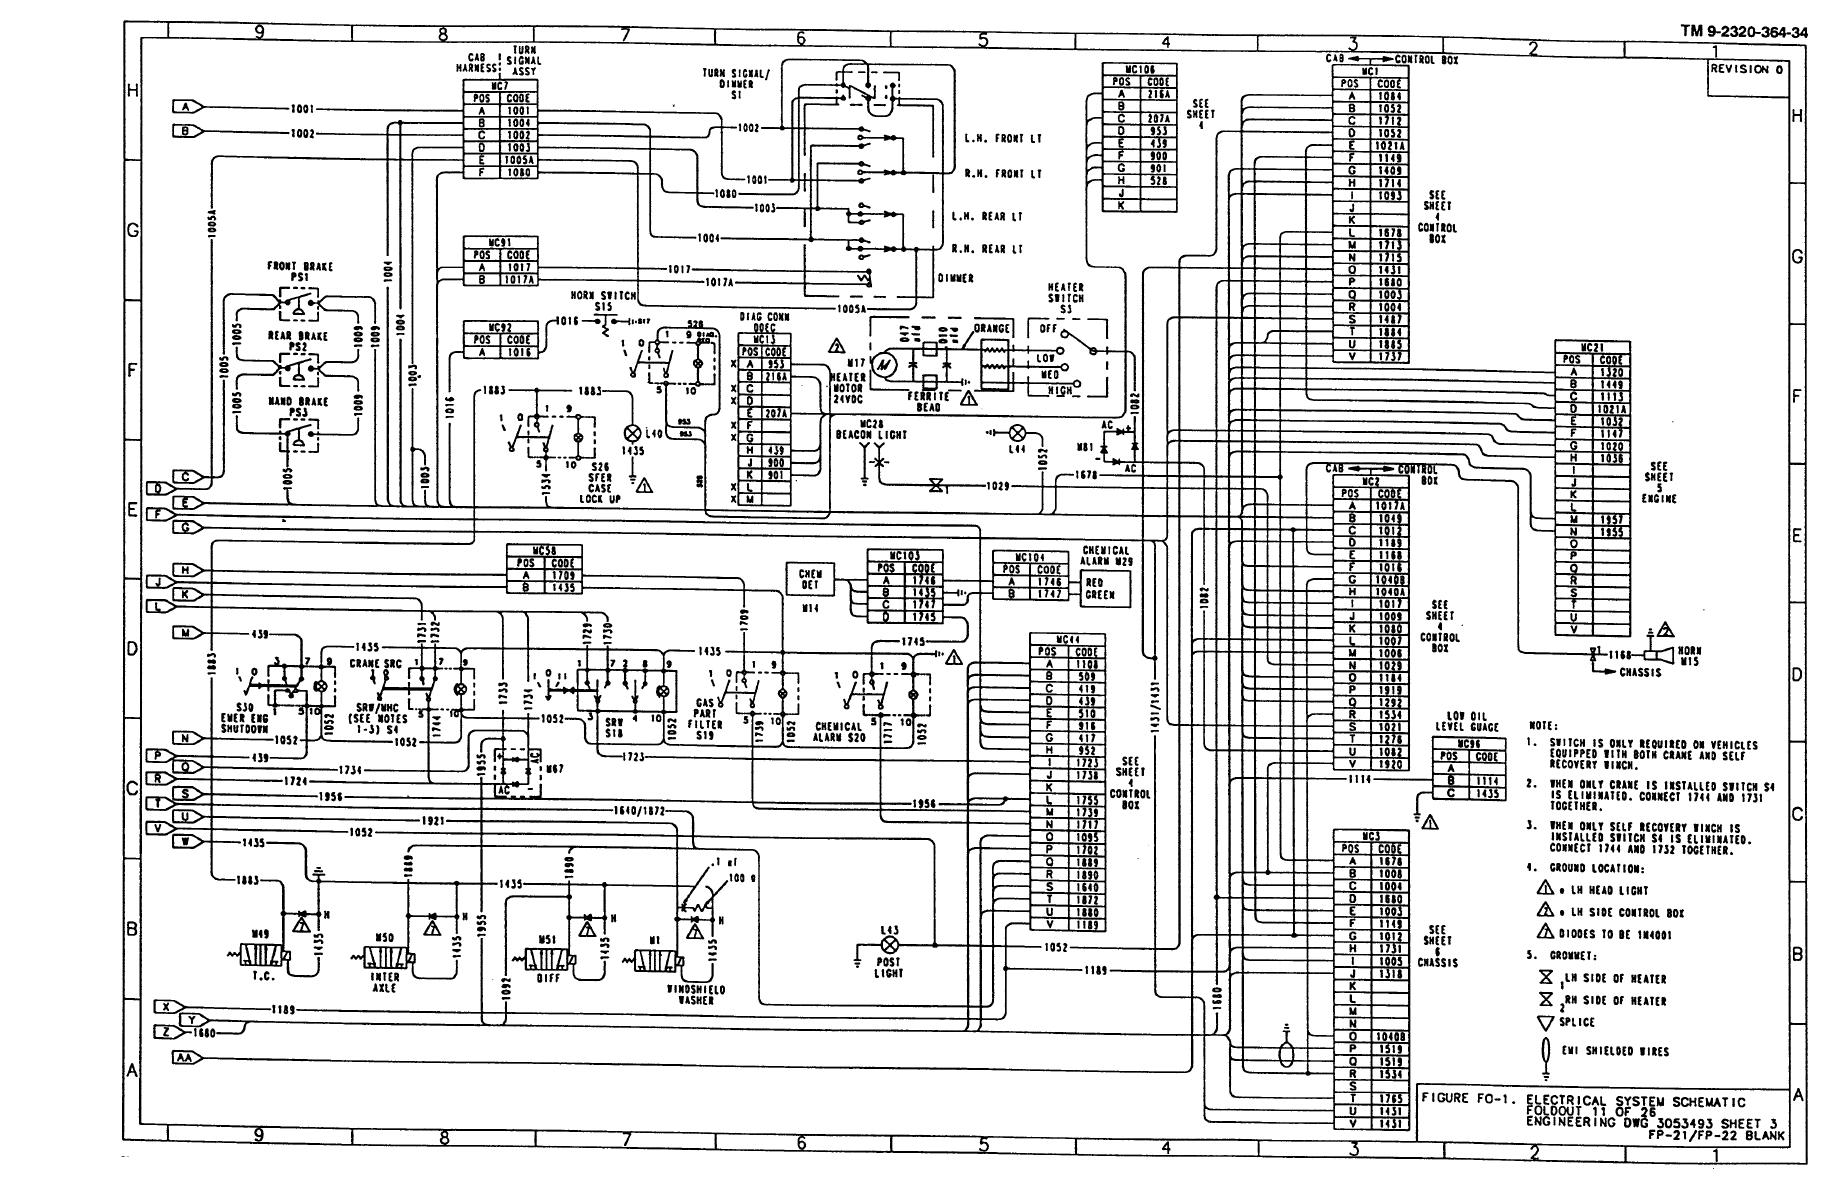 Wiring Diagram Symbols Dwg Not Lossing Autocad Symbol Electrical Engineering Schematics Free Engine